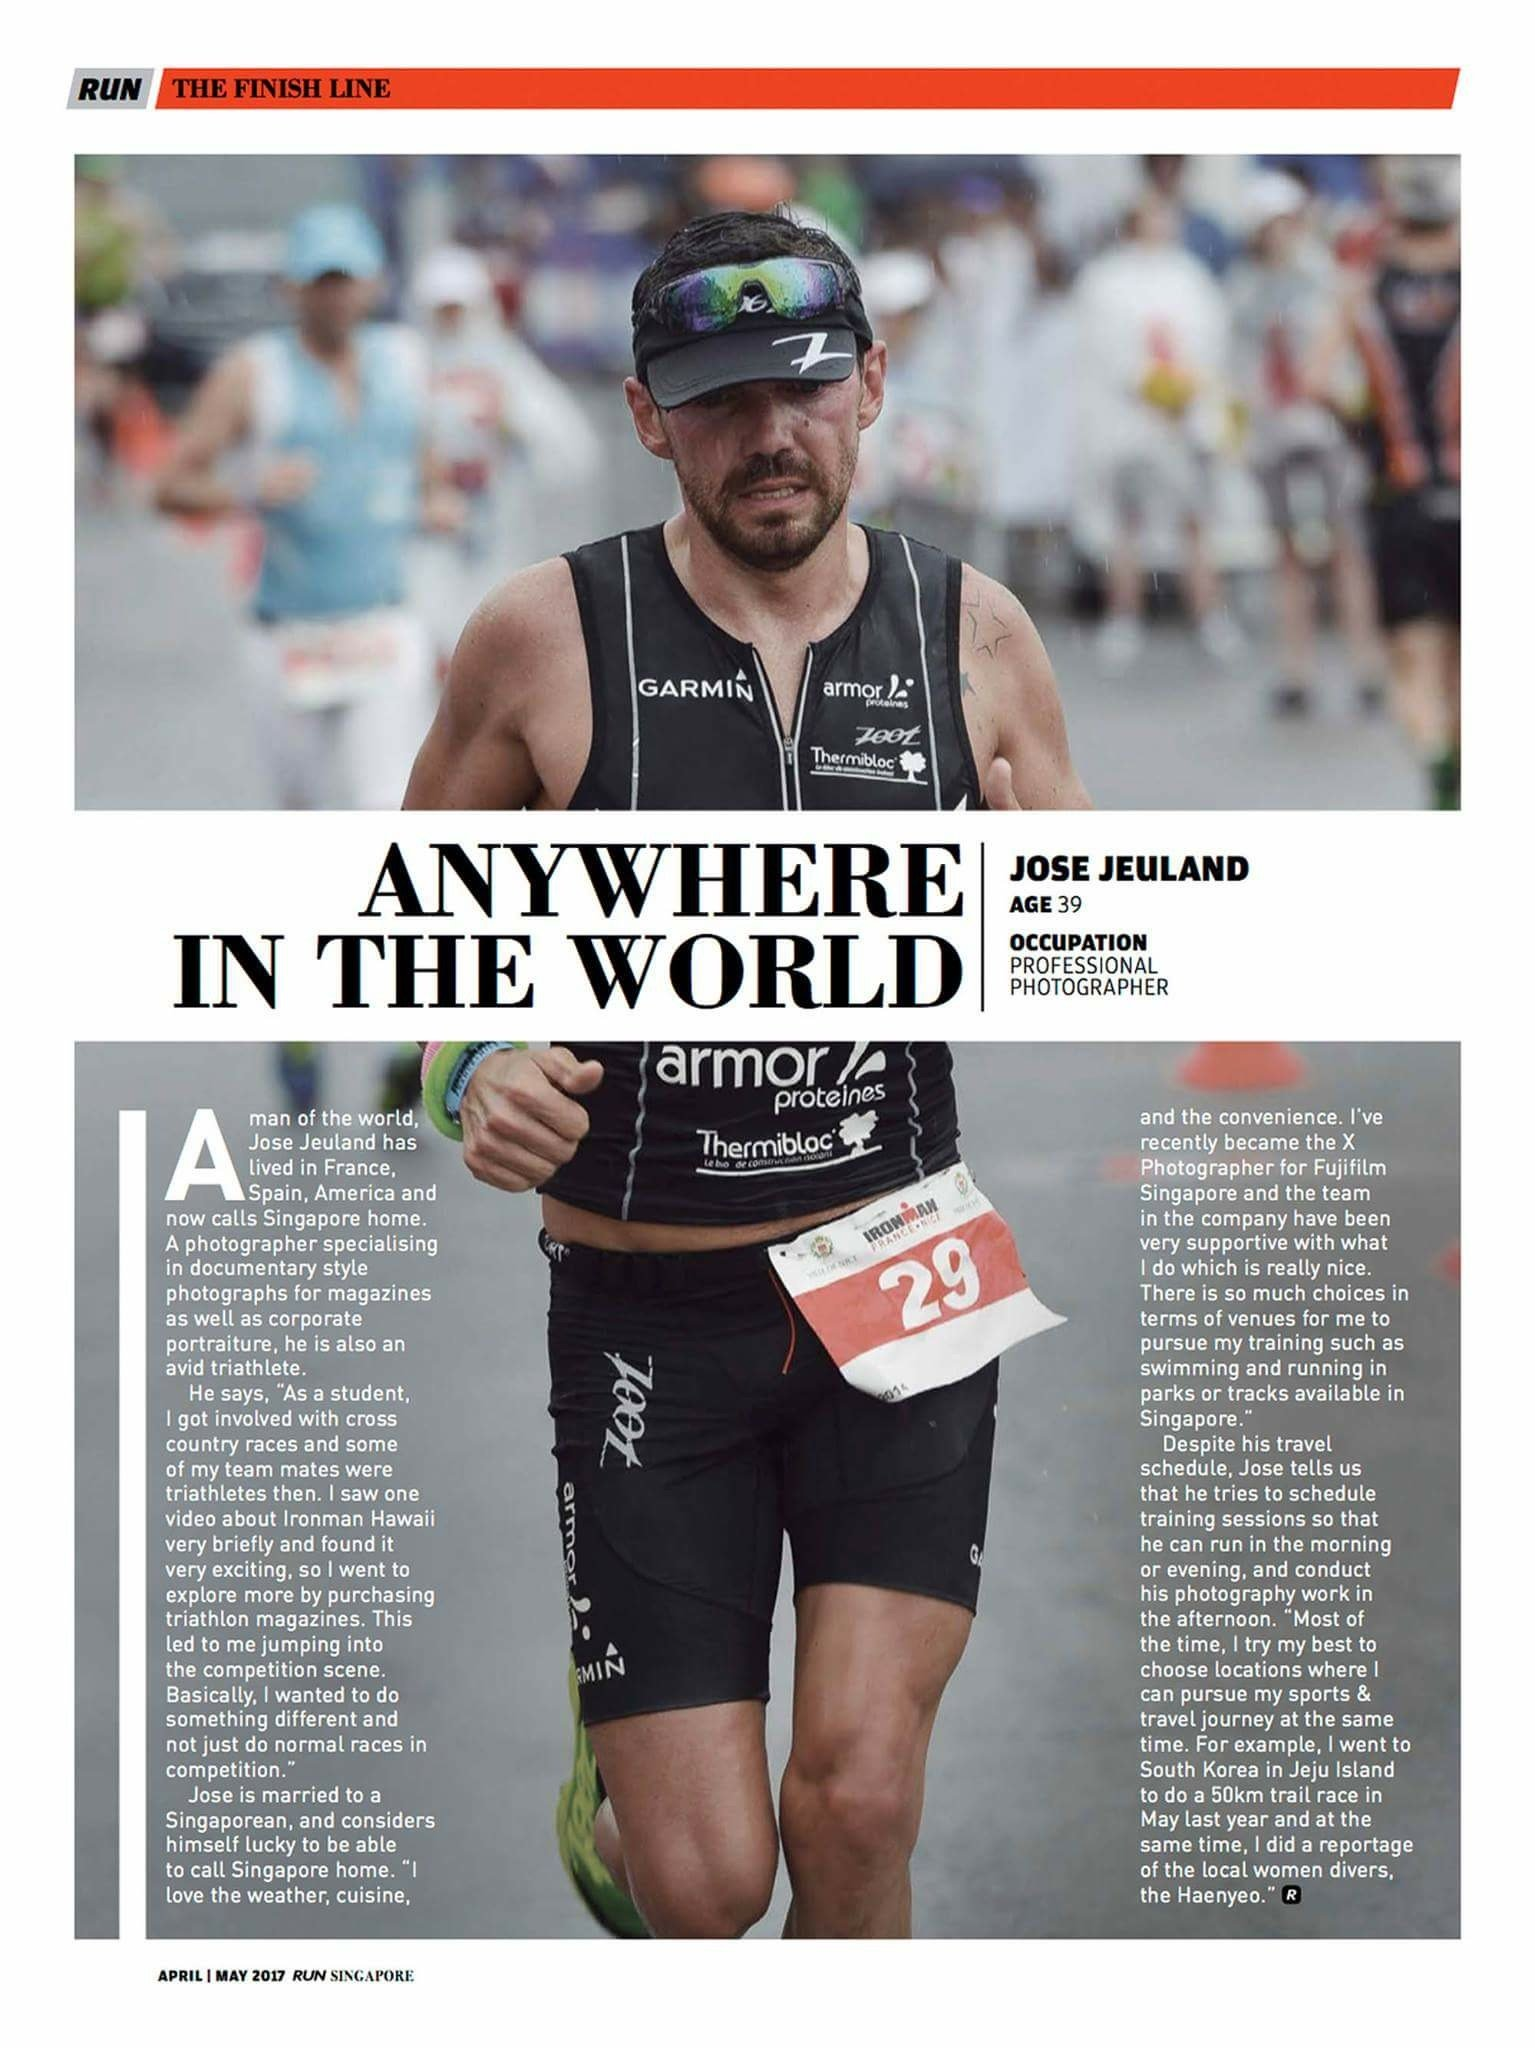 RUN ASIA MAGAZINE Jose Jeuland Athlete photographer Triathlete sport